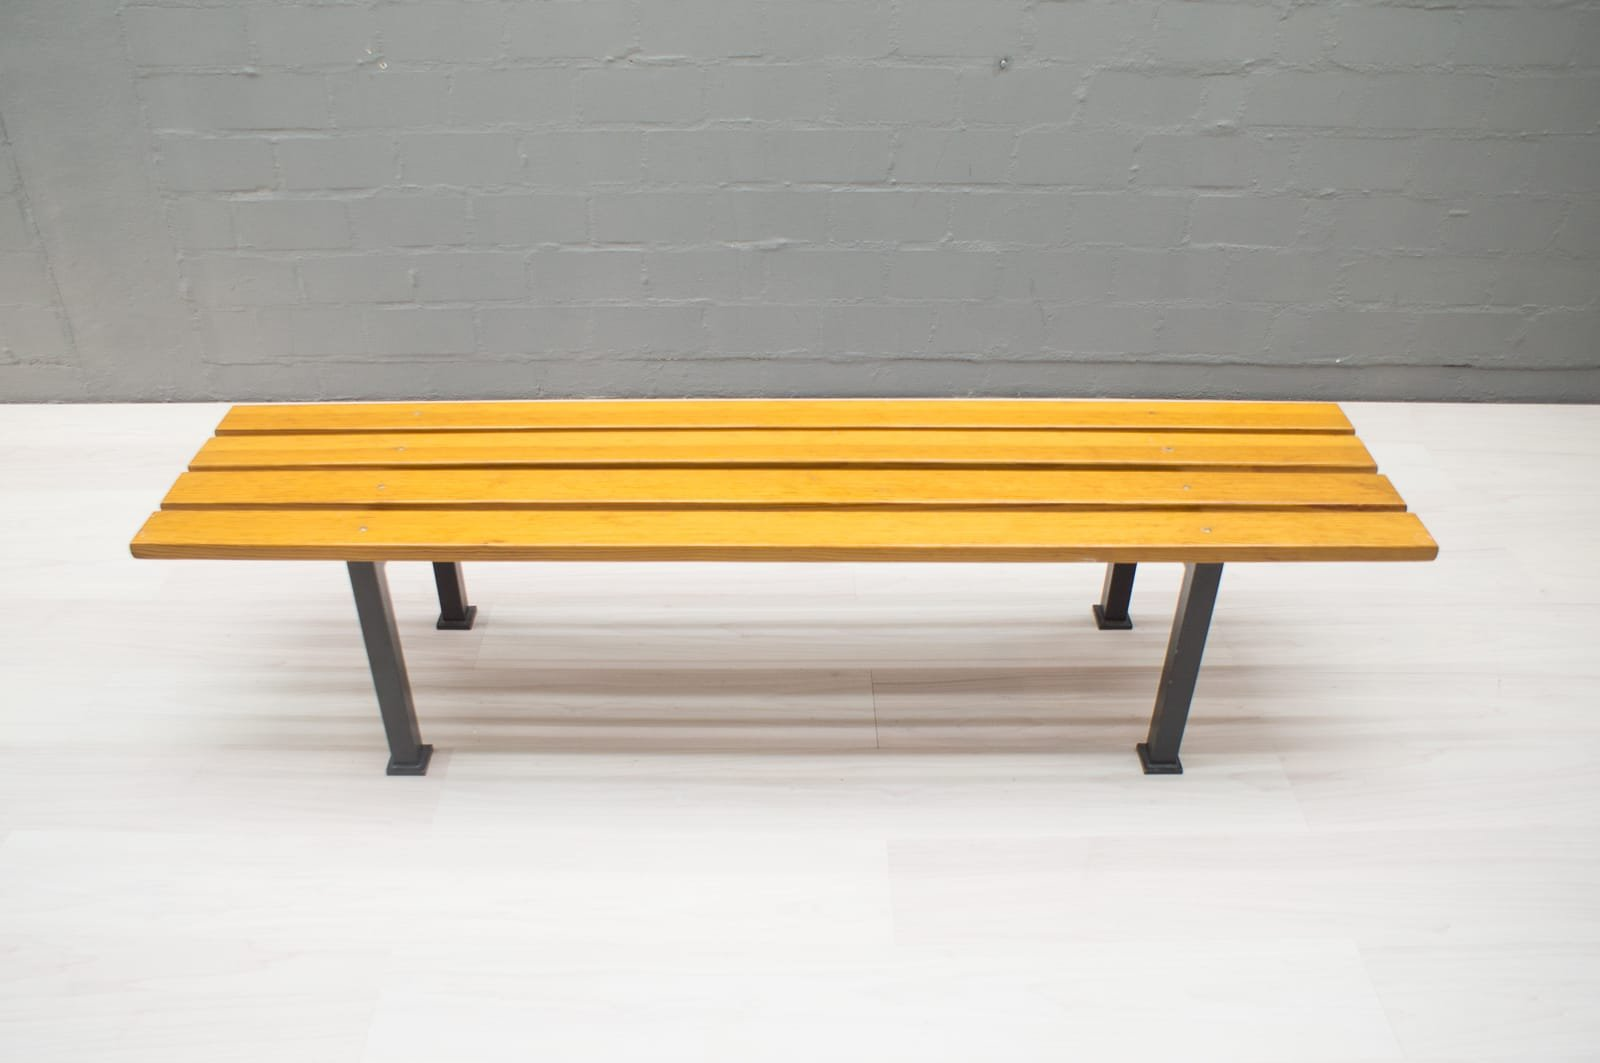 Puristic Pine Slat Bench On Square Metal Frame, 1960s